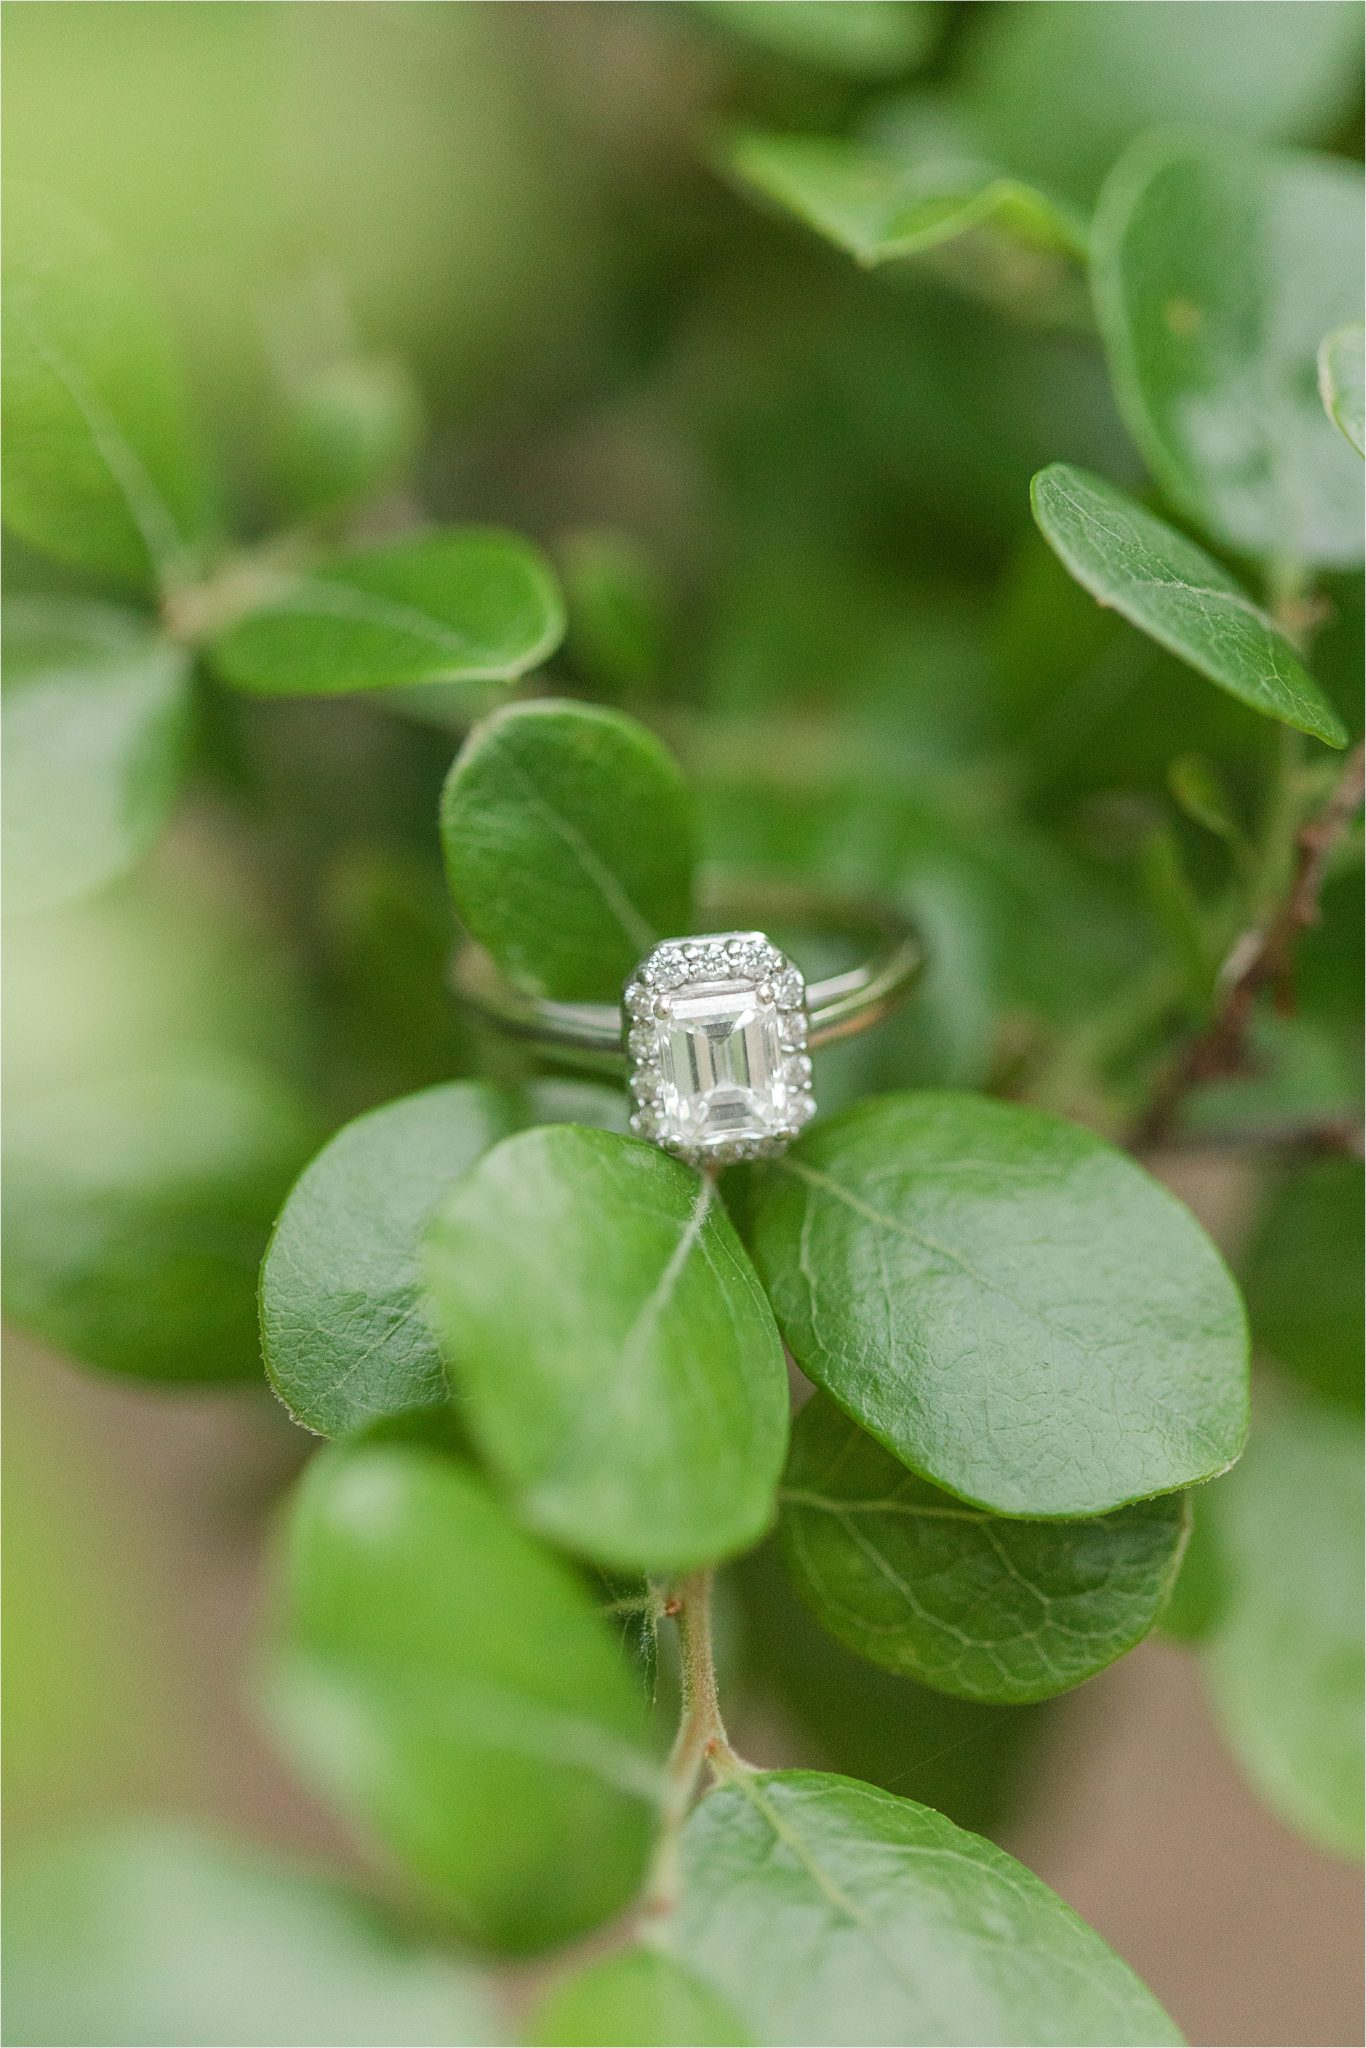 Engagement ring-white gold-emerald cut-diamond halo-Alabama engagement session locations-Baldwin County-Blakeley State Park-Mobile Alabama wedding photographer